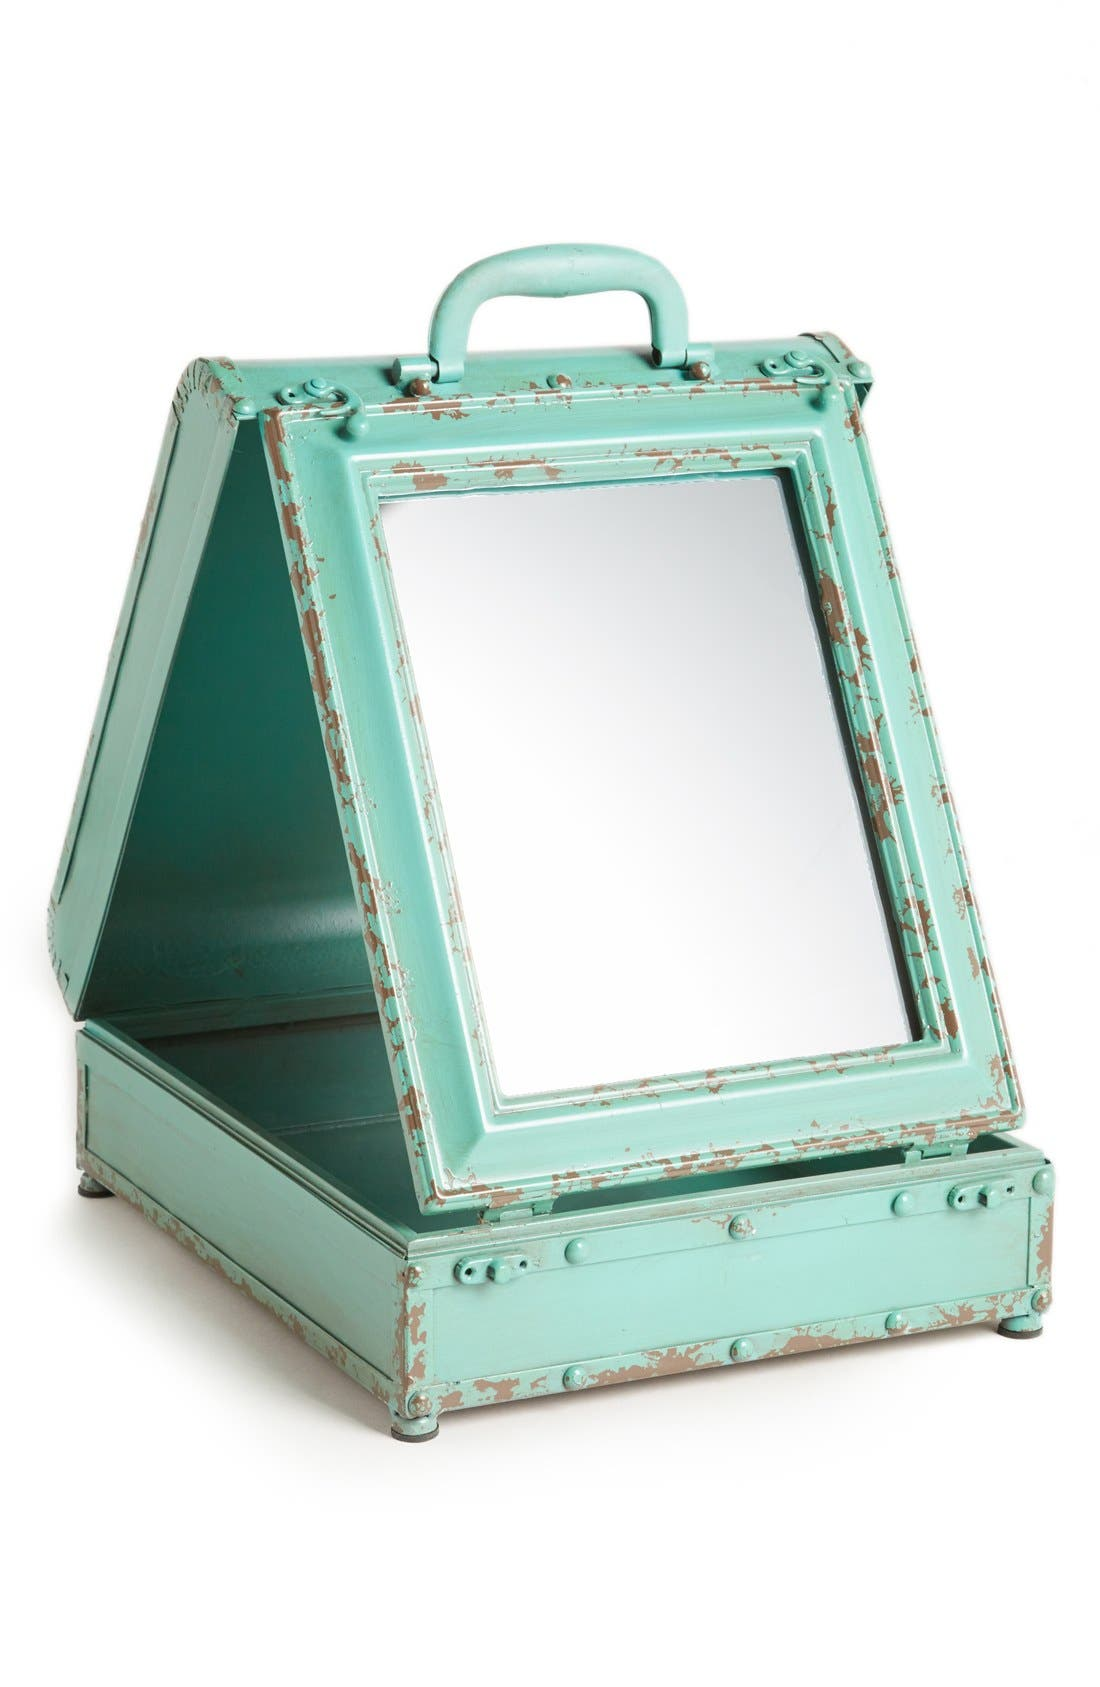 Alternate Image 1 Selected - Creative Co-Op Folding Trunk Mirror